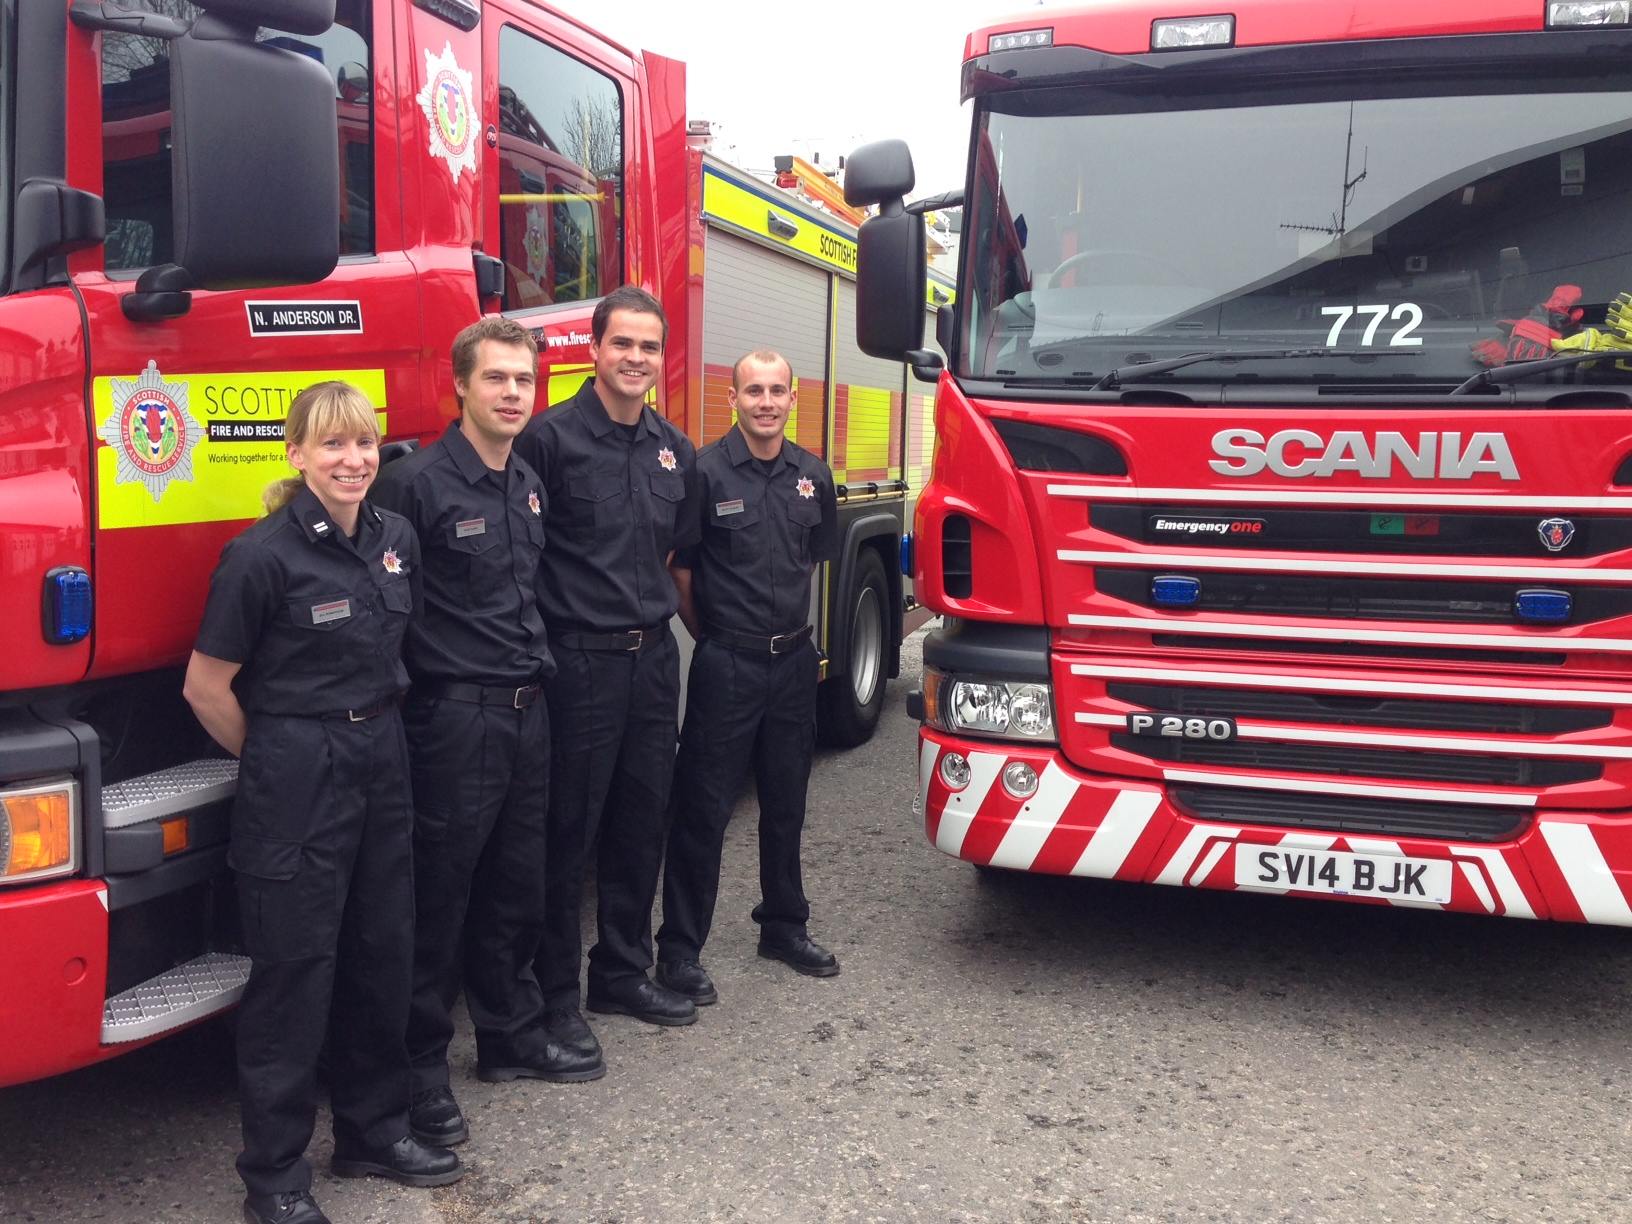 First new appliances arrive in Aberdeen as part of new SFRS investment in fleet